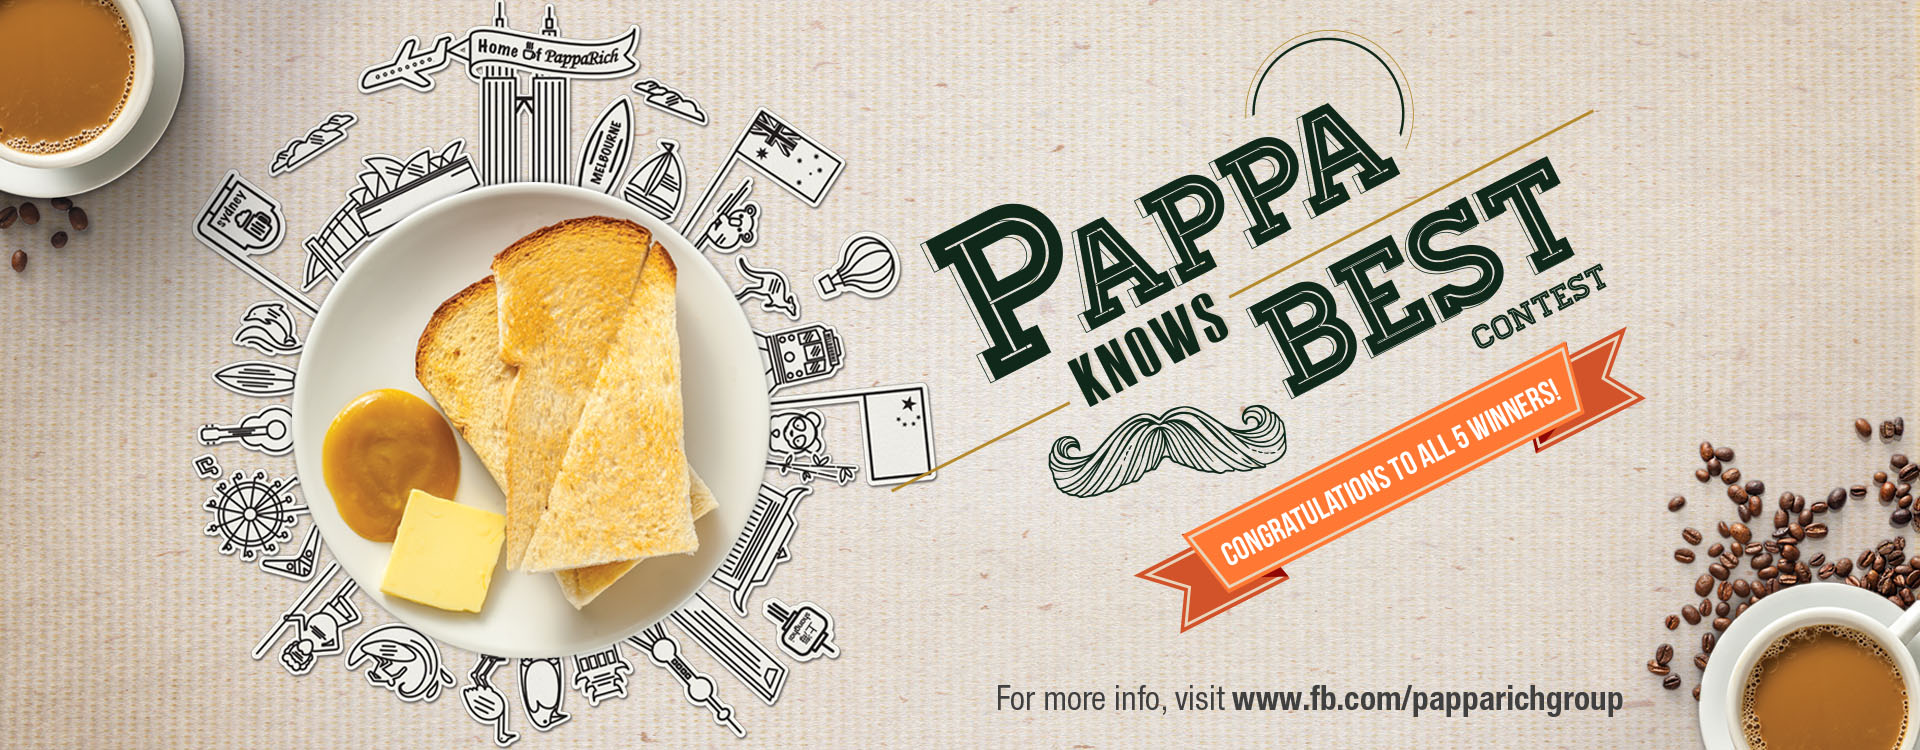 PPR_Pappa-Know-Best_Web-Banner_V1-2